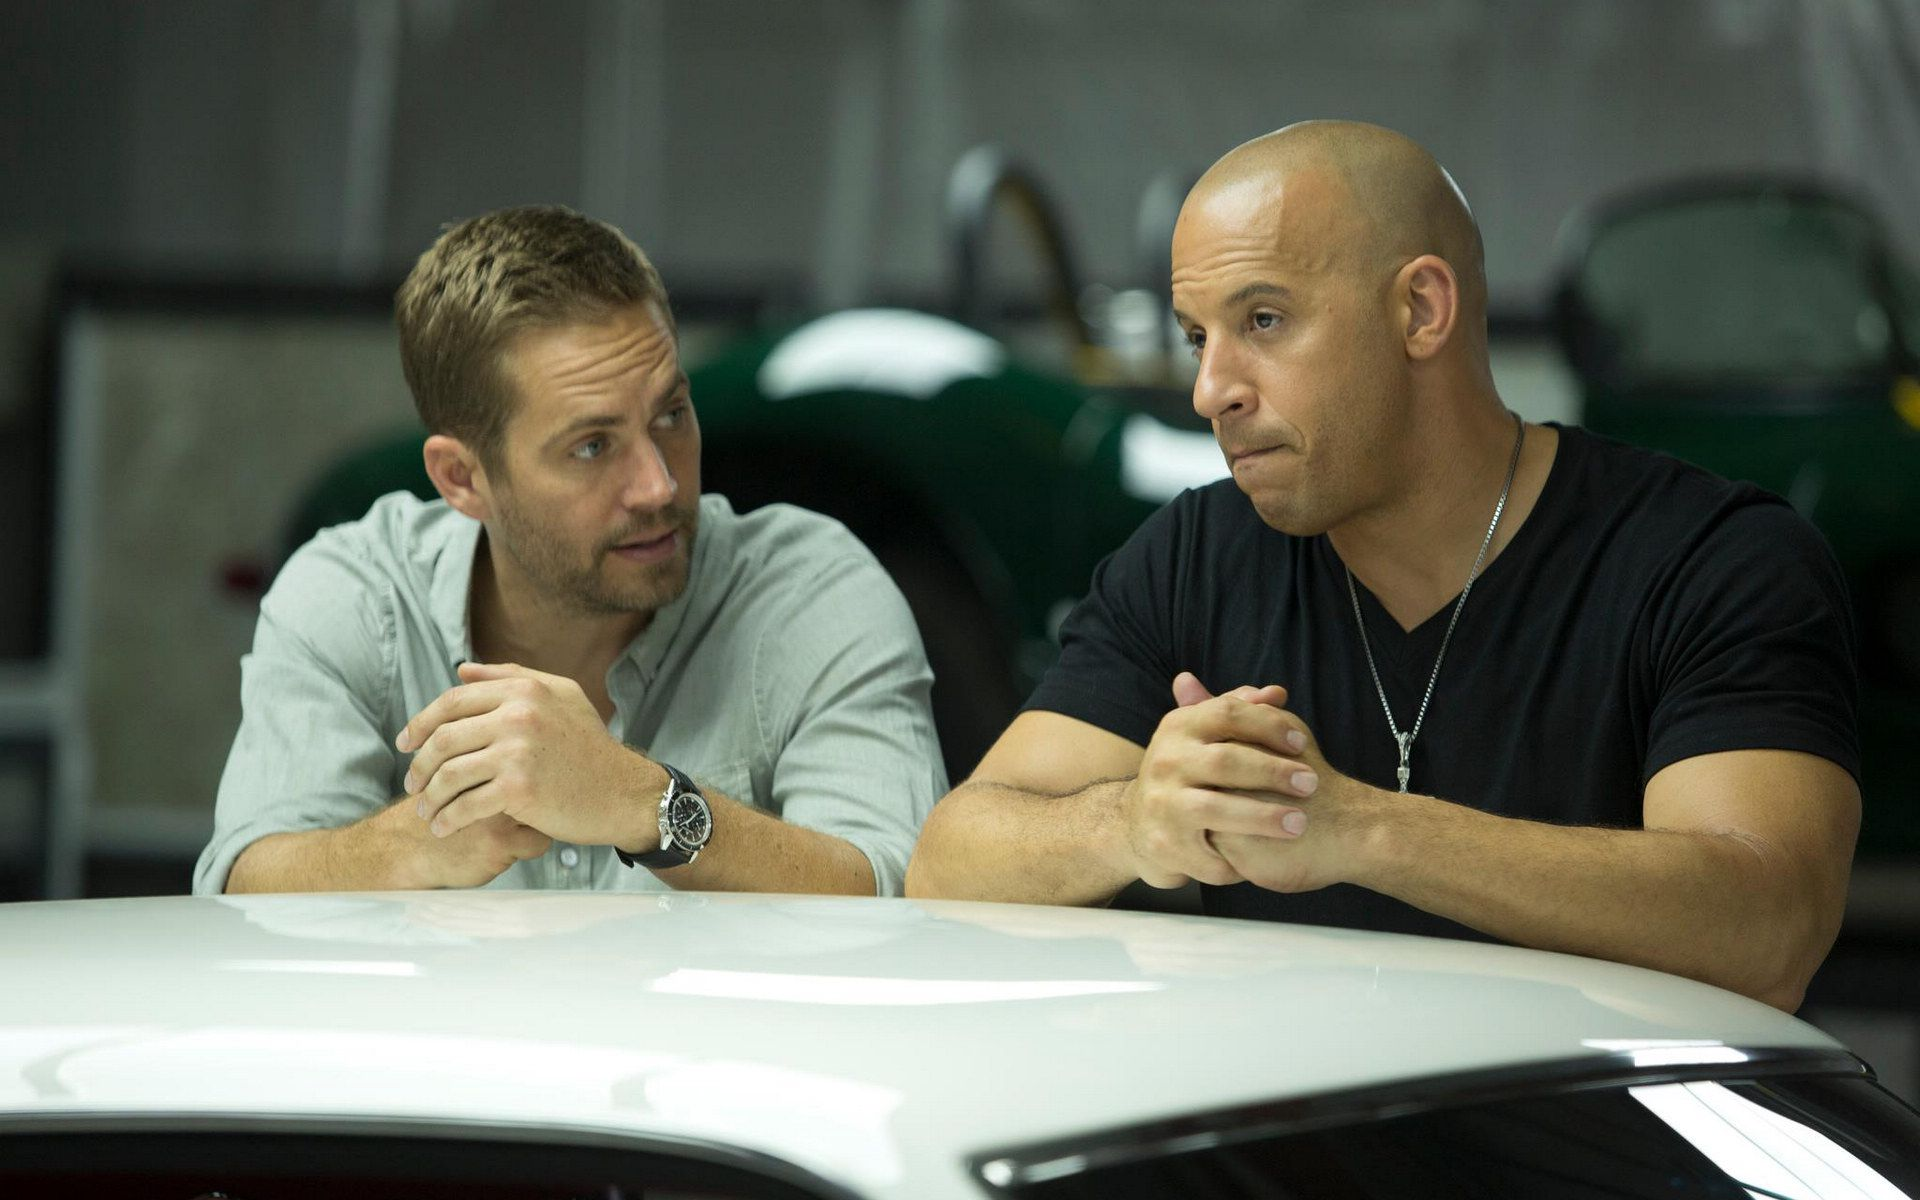 Fast And Furious Iphone 5 Wallpaper Fast And Furious 6 Full Hd Fond D 233 Cran And Arri 232 Re Plan